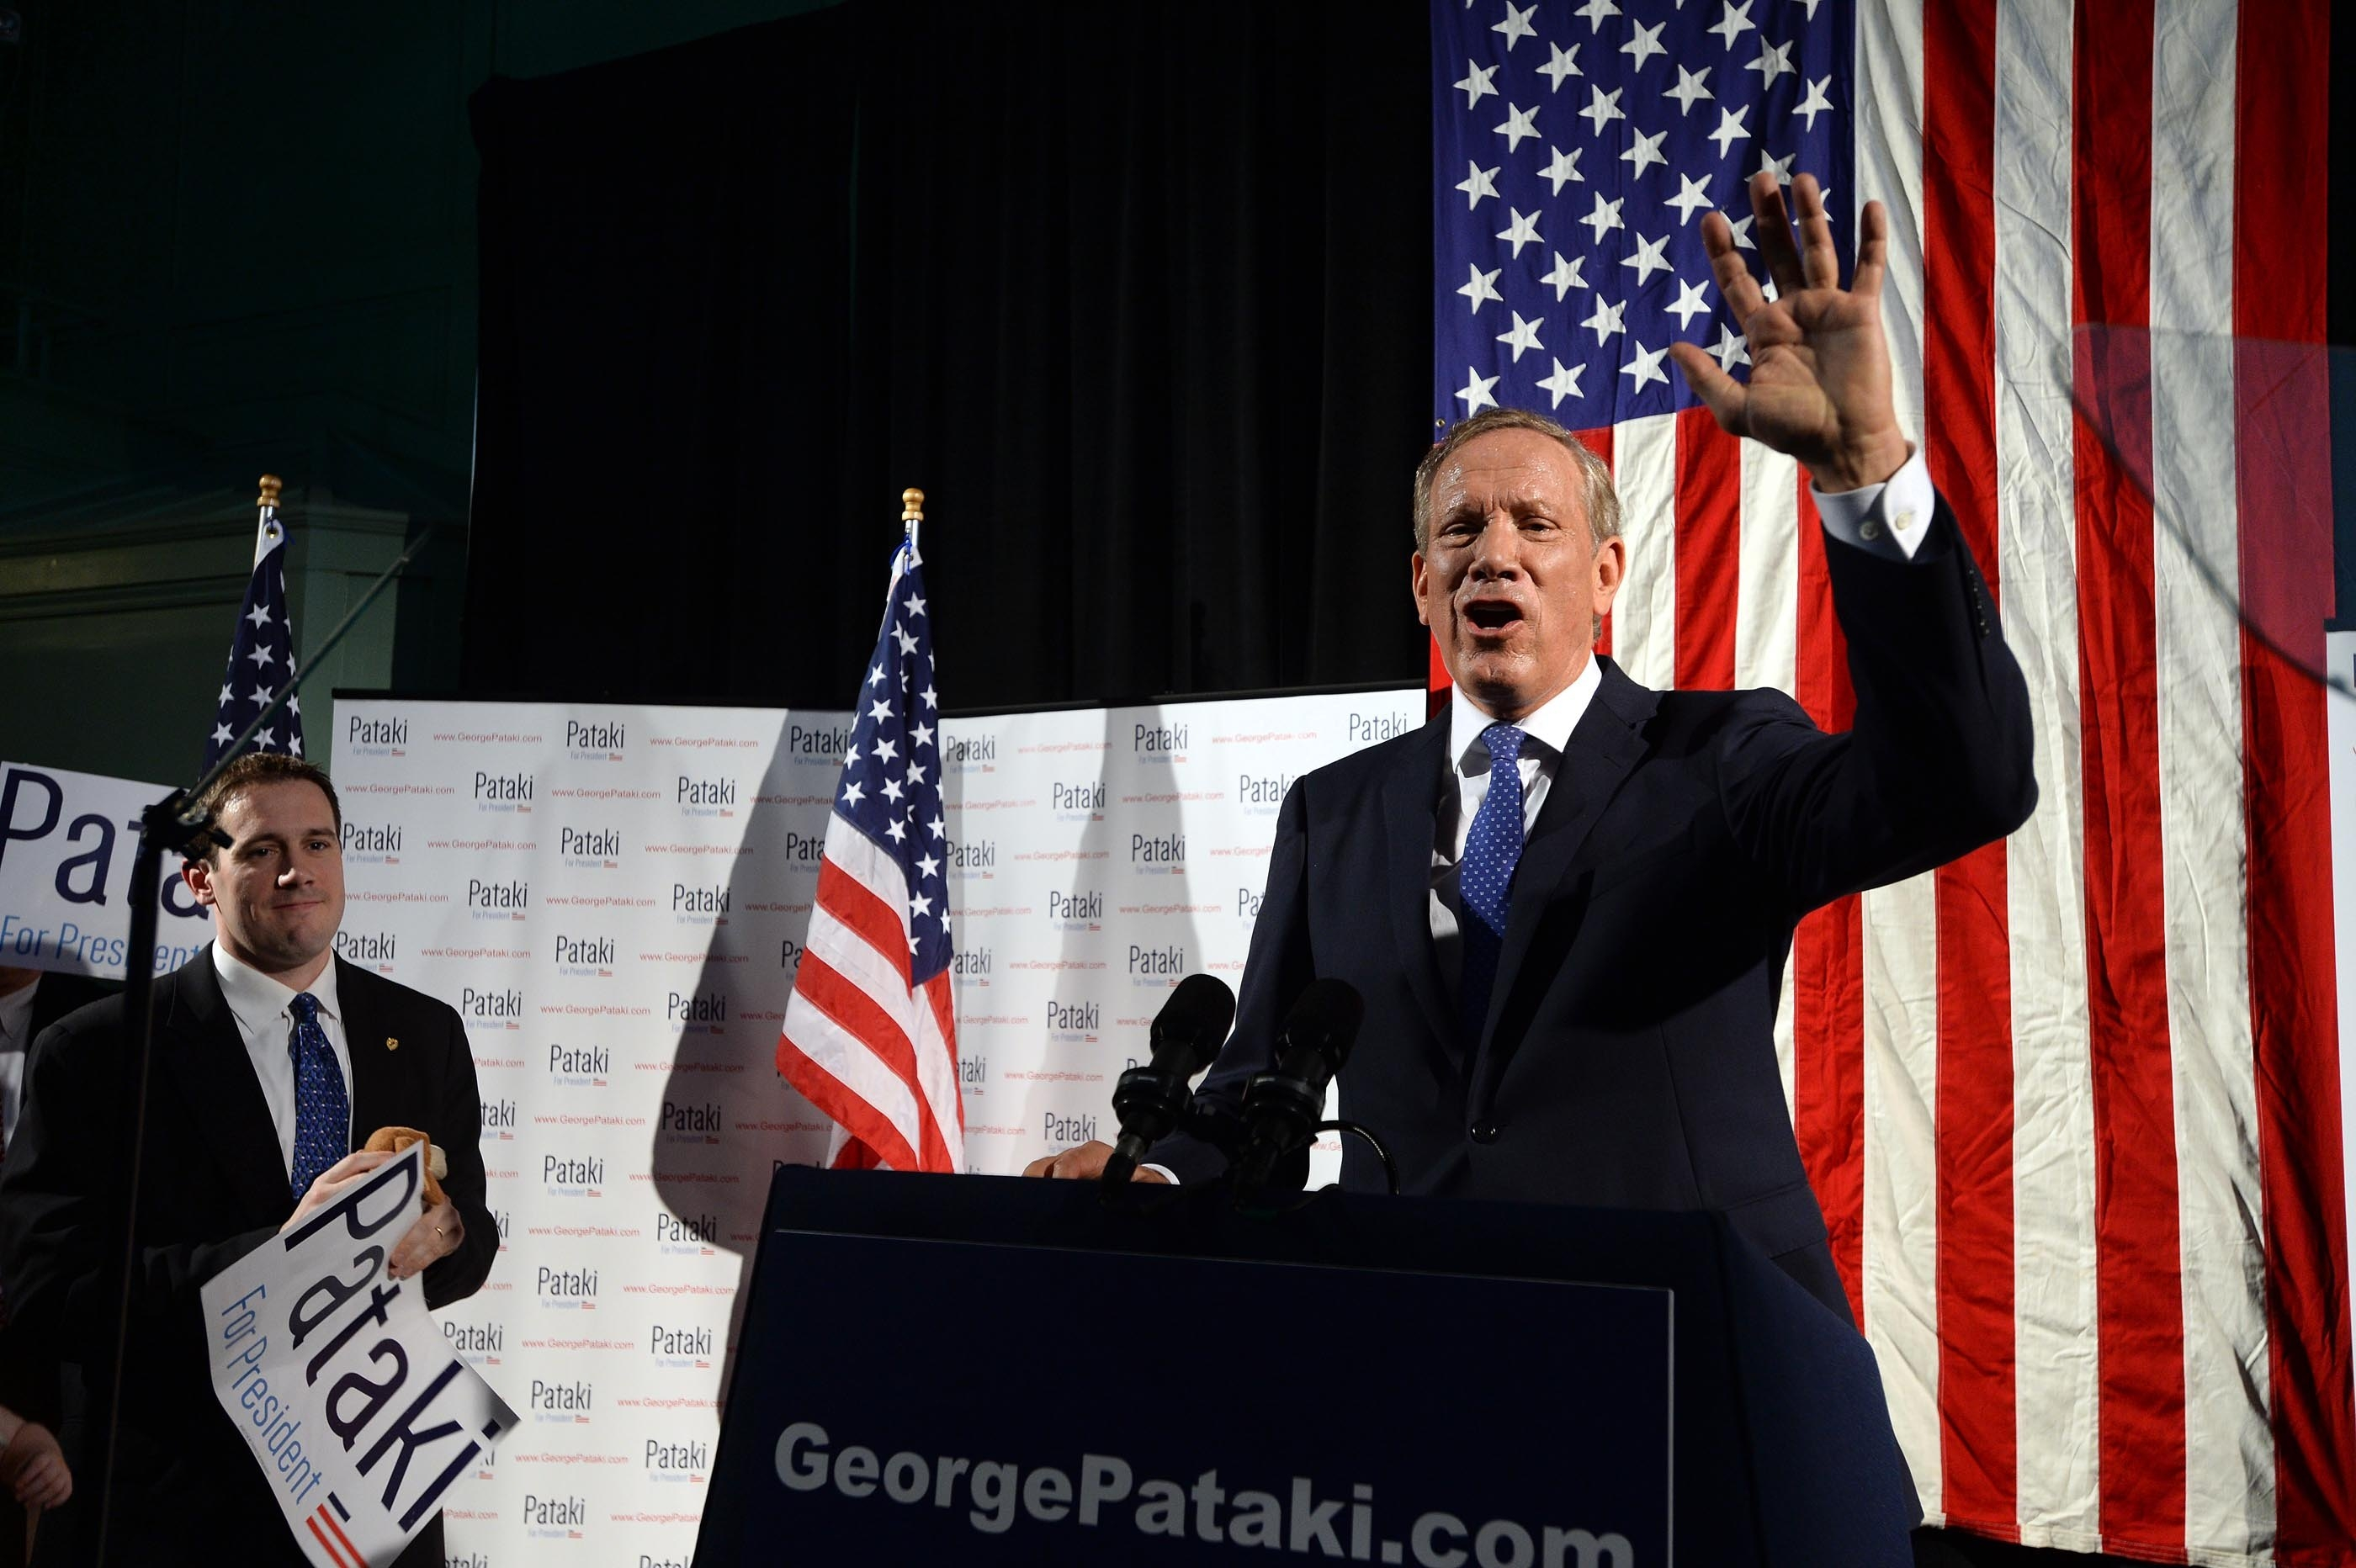 Former New York Gov. George E. Pataki announces candidacy for Republican presidential nomination at Old Town Hall in Exeter, N.H., emphasizing less government, lower taxes, tolerance for immigration, strong defense and global leadership from the White House.